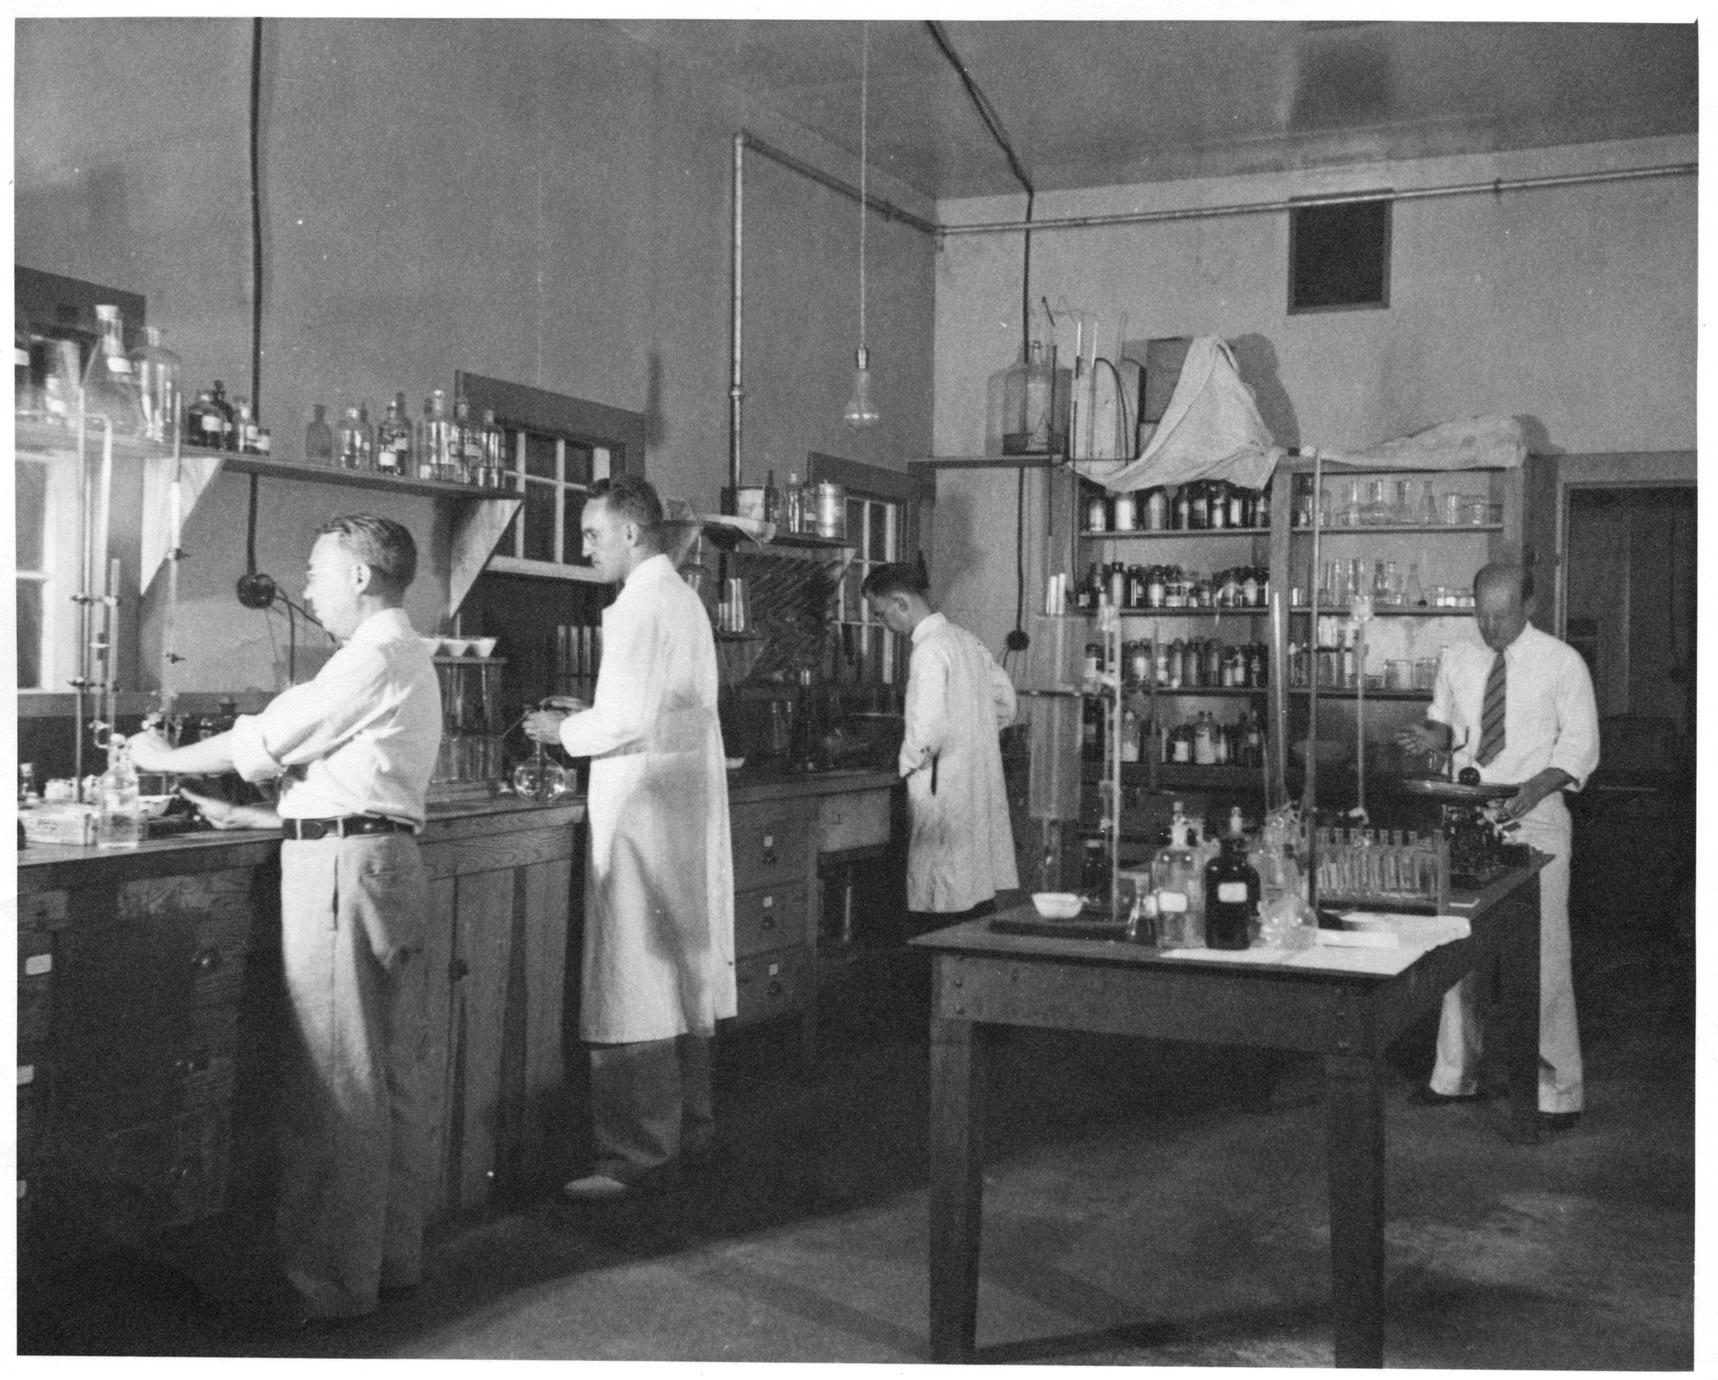 Hasler and other researchers at Yorktown Lab